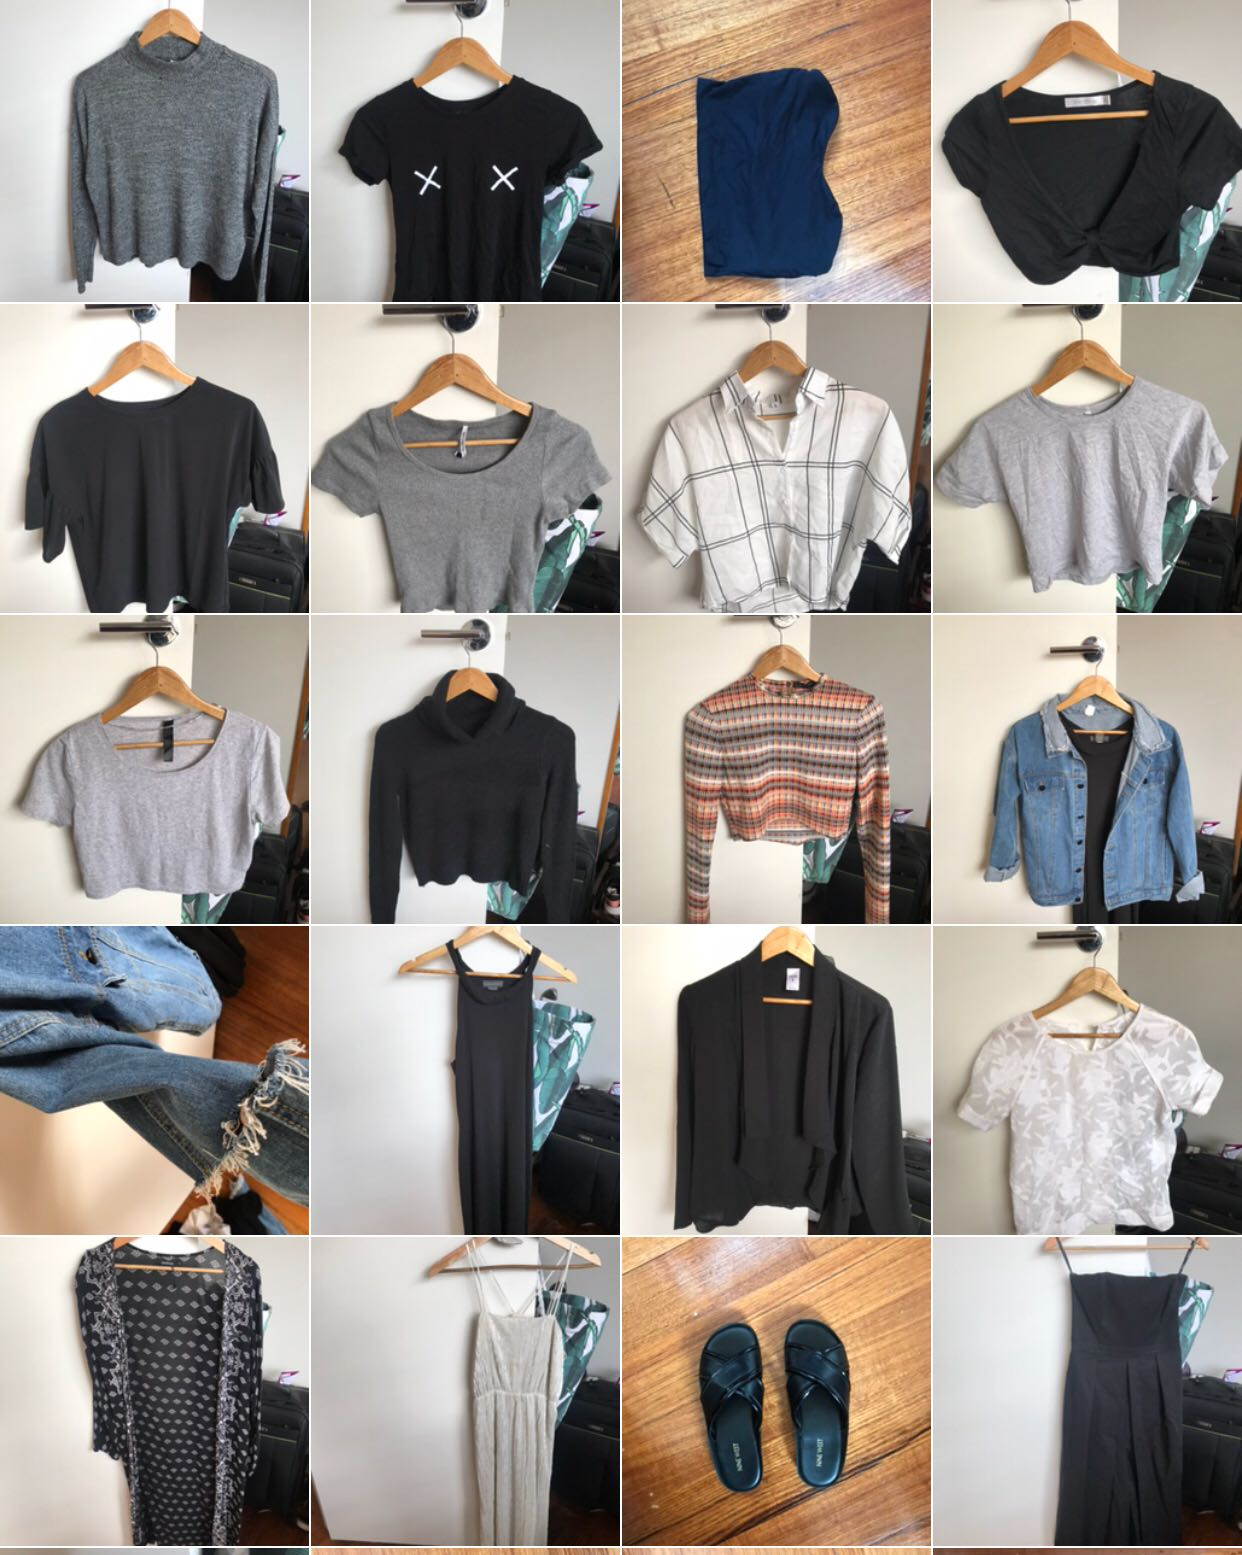 30 NEW ITEMS LISTED!